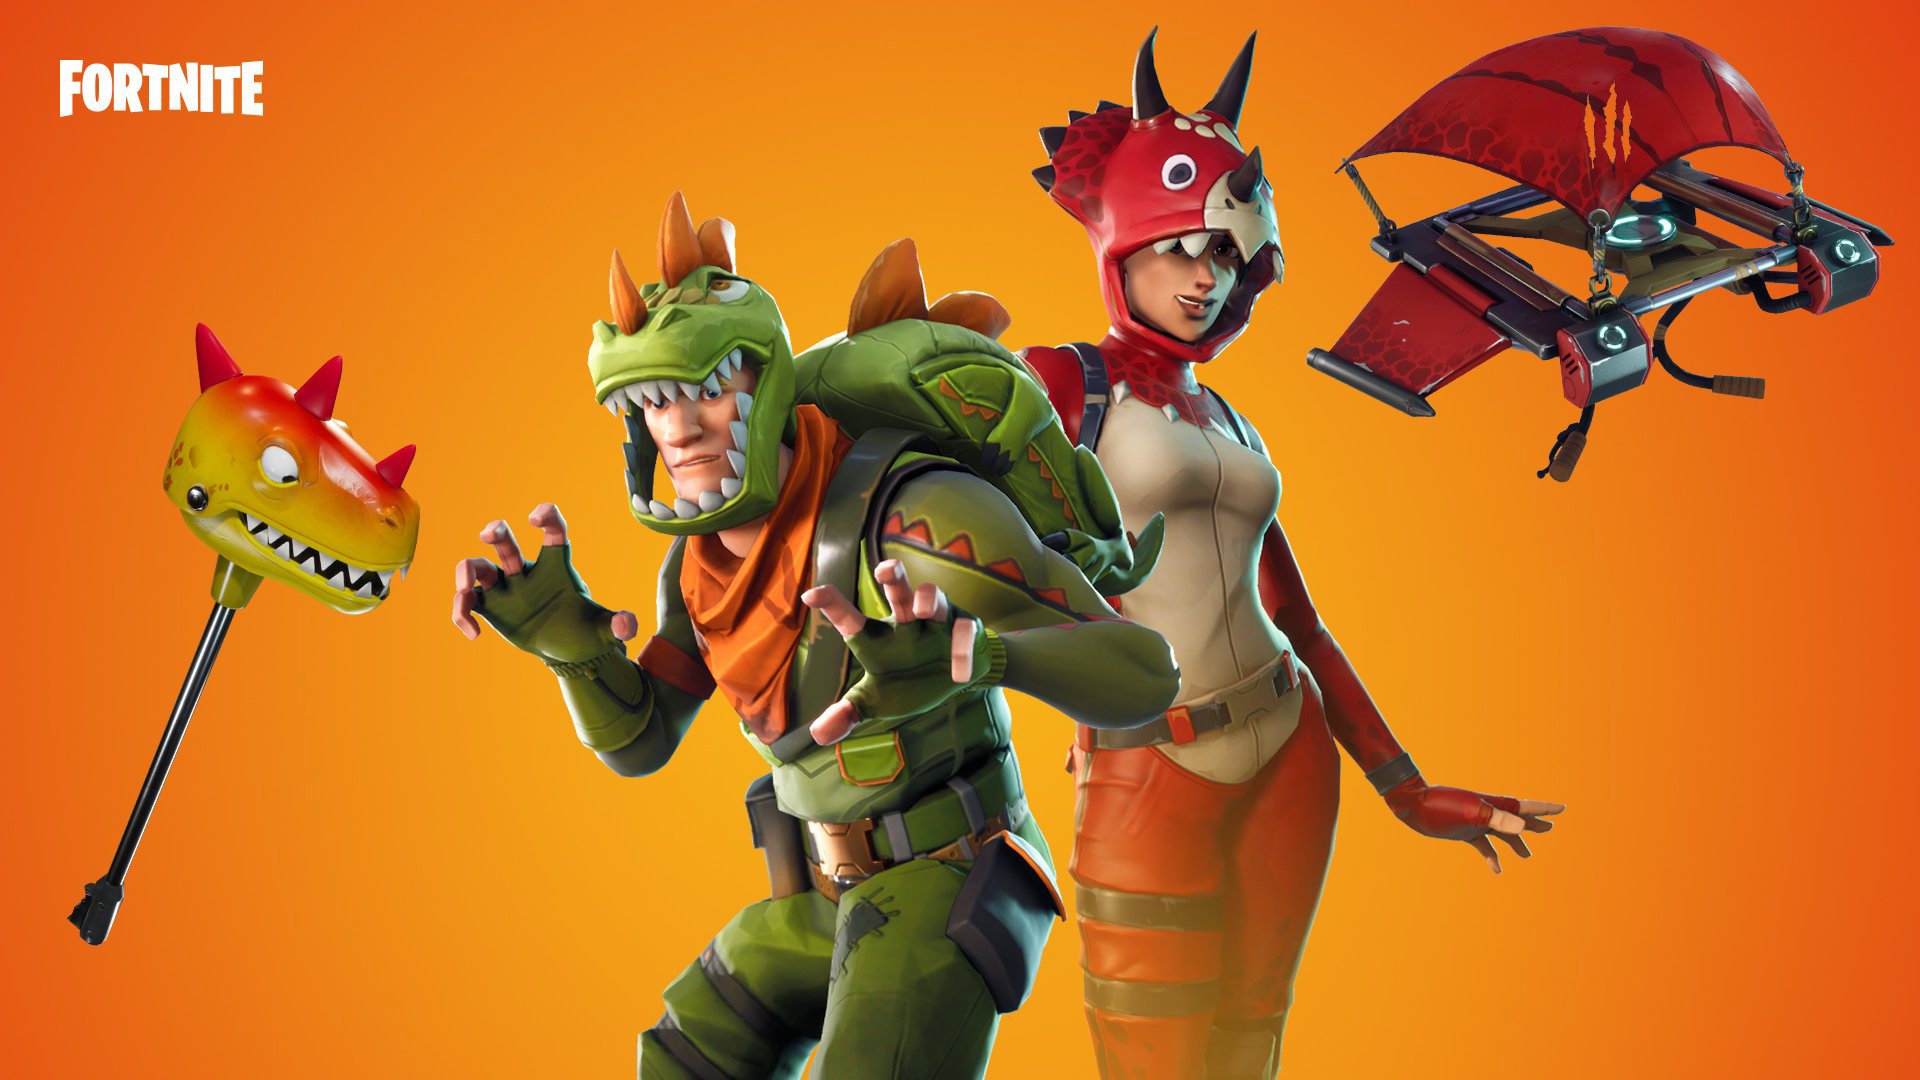 Fortnite Backgrounds Dino Skins 4061 Wallpapers and Stock 1920x1080